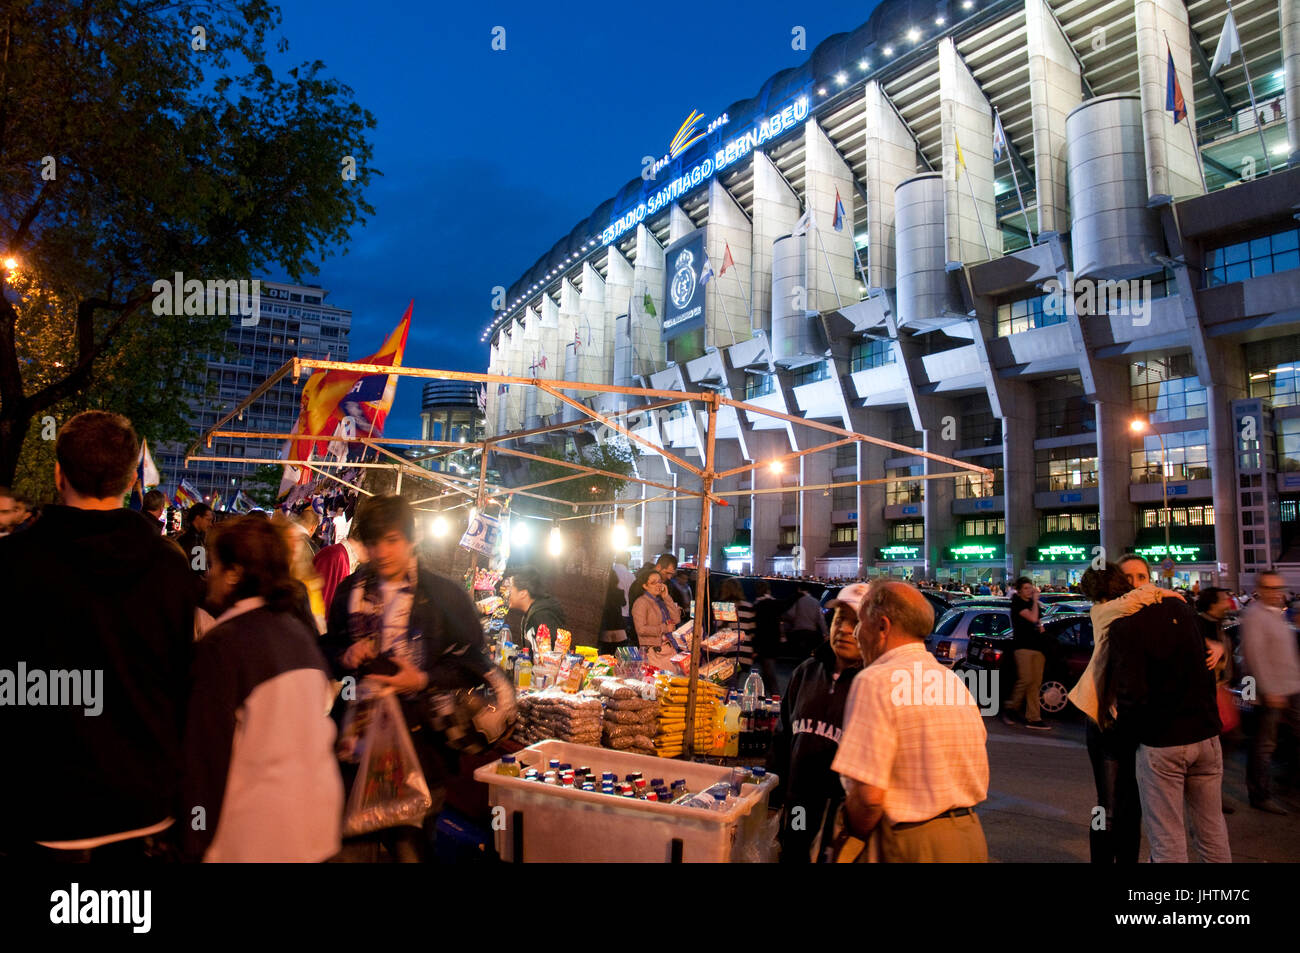 Street vending around the Santiago Bernabeu stadium before the Real Madrid-Barcelona football match. Madrid, Spain. - Stock Image